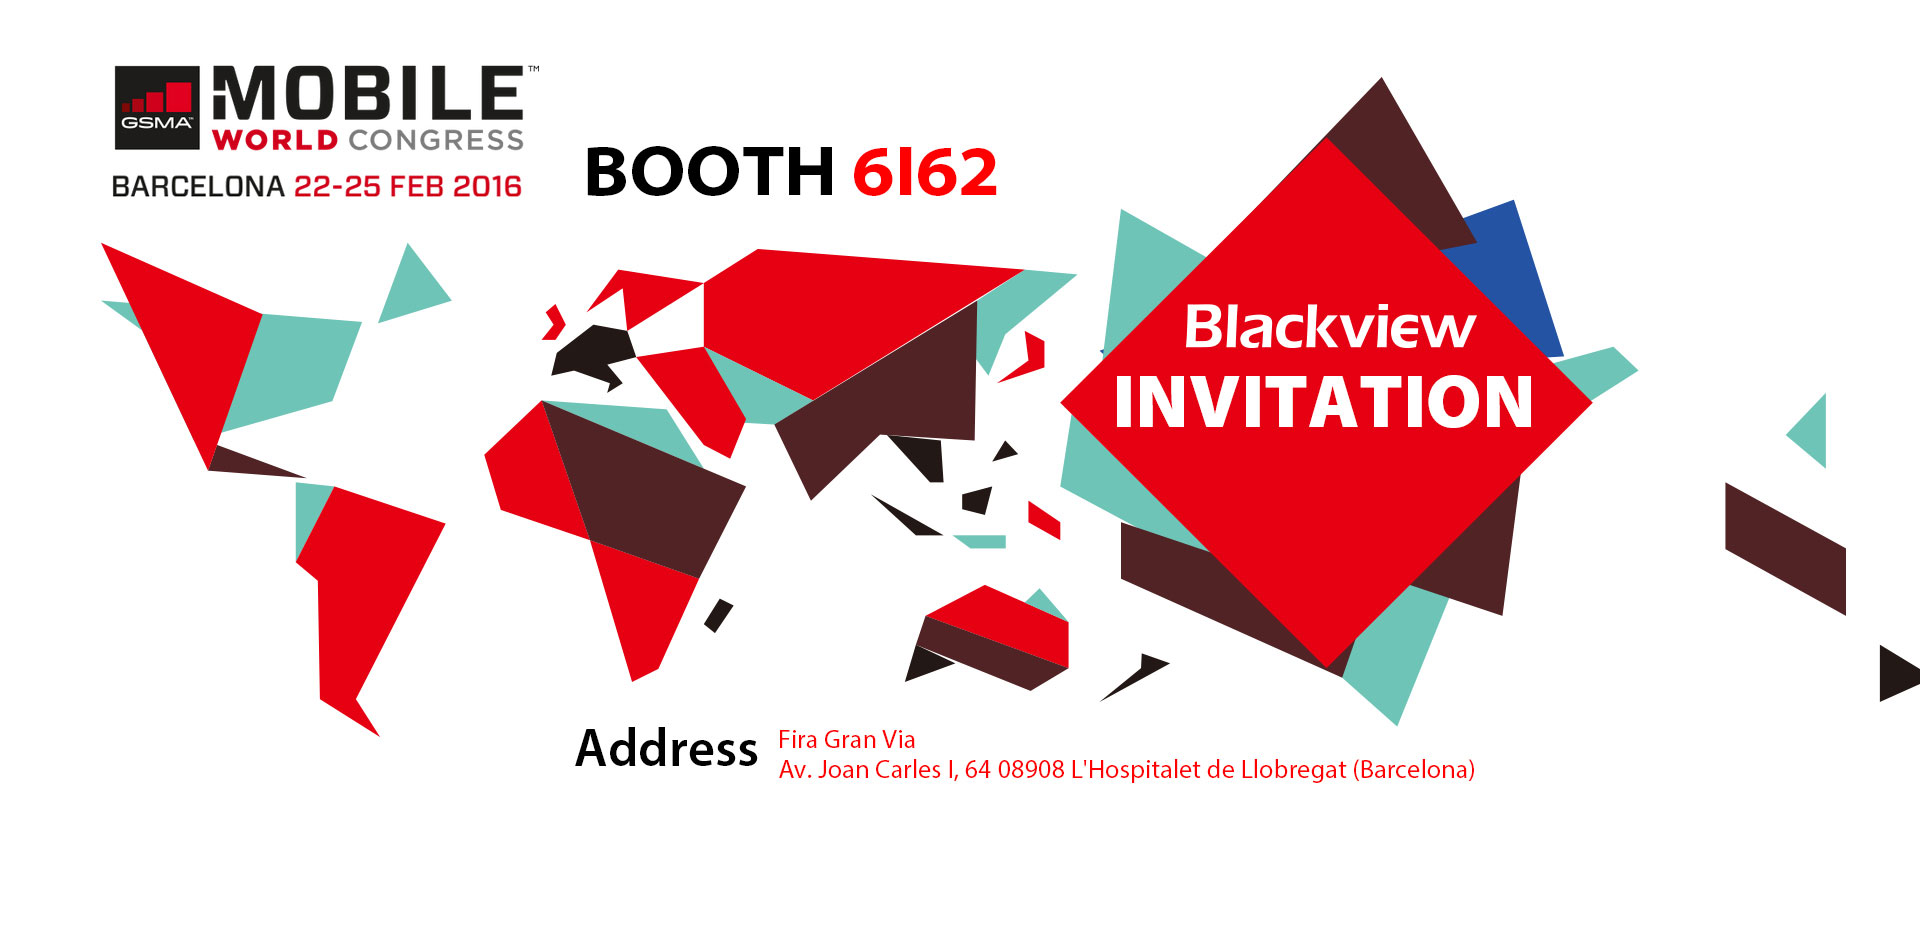 Blackview Going to Launch the Latest Gadgets at MWC 2016